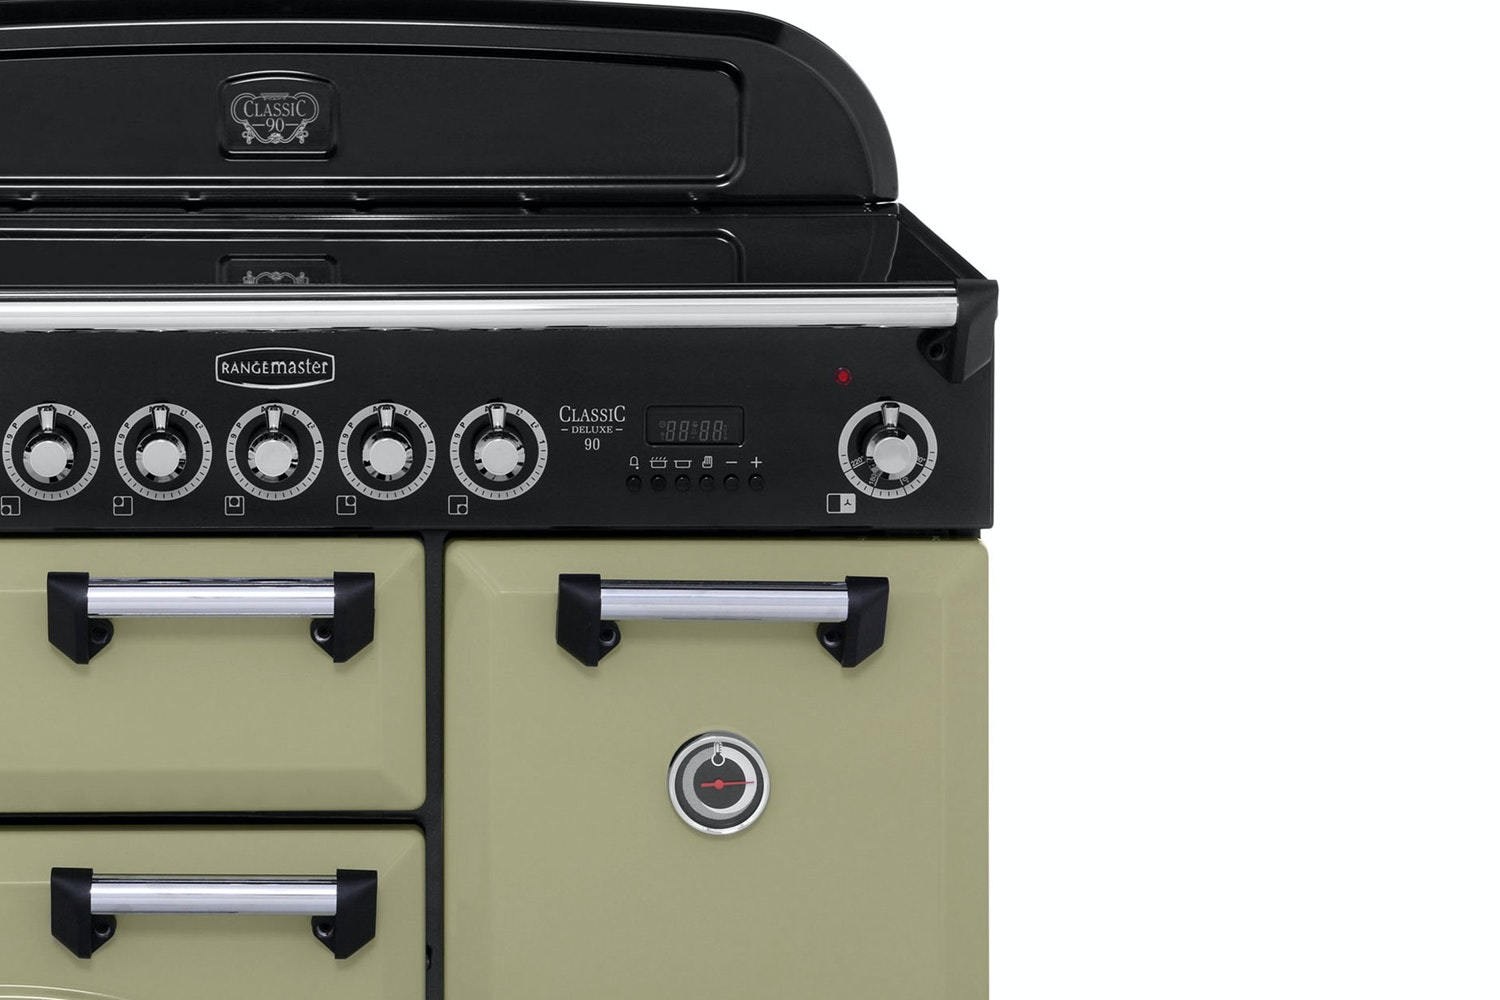 Rangemaster Classic 90cm Induction Range Cooker | CDL90EIOG/C | Olive Green